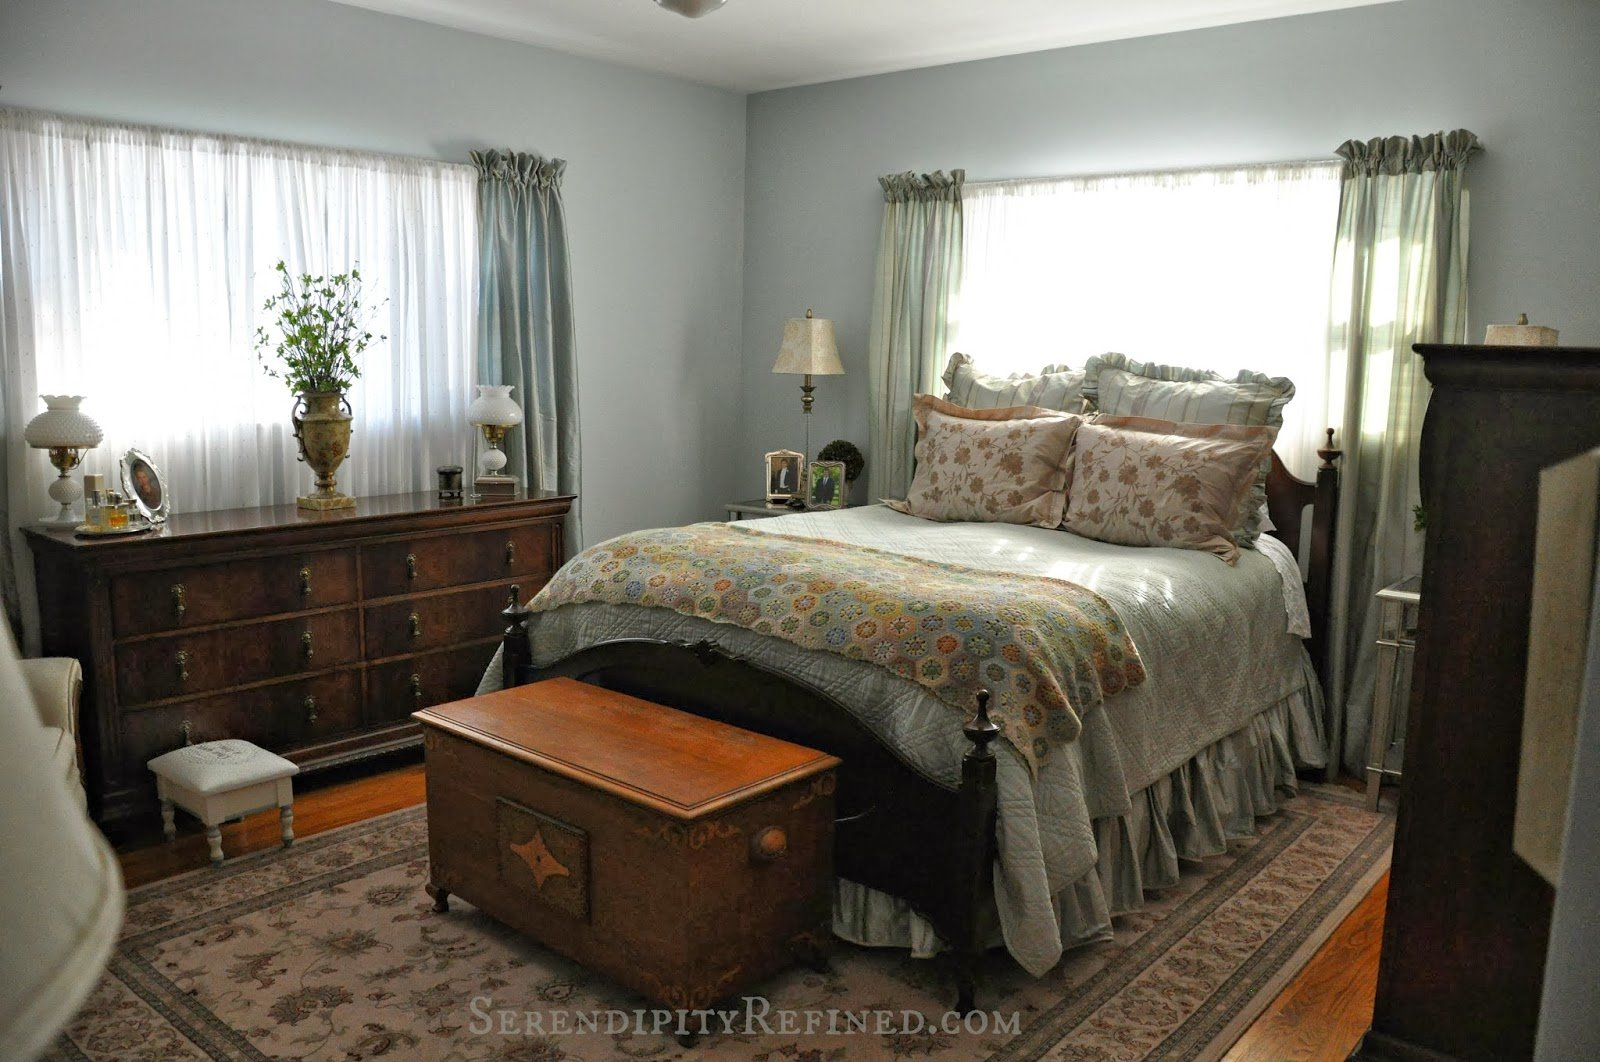 Best Serendipity Refined Blog Bedroom Progress Photos French With Pictures